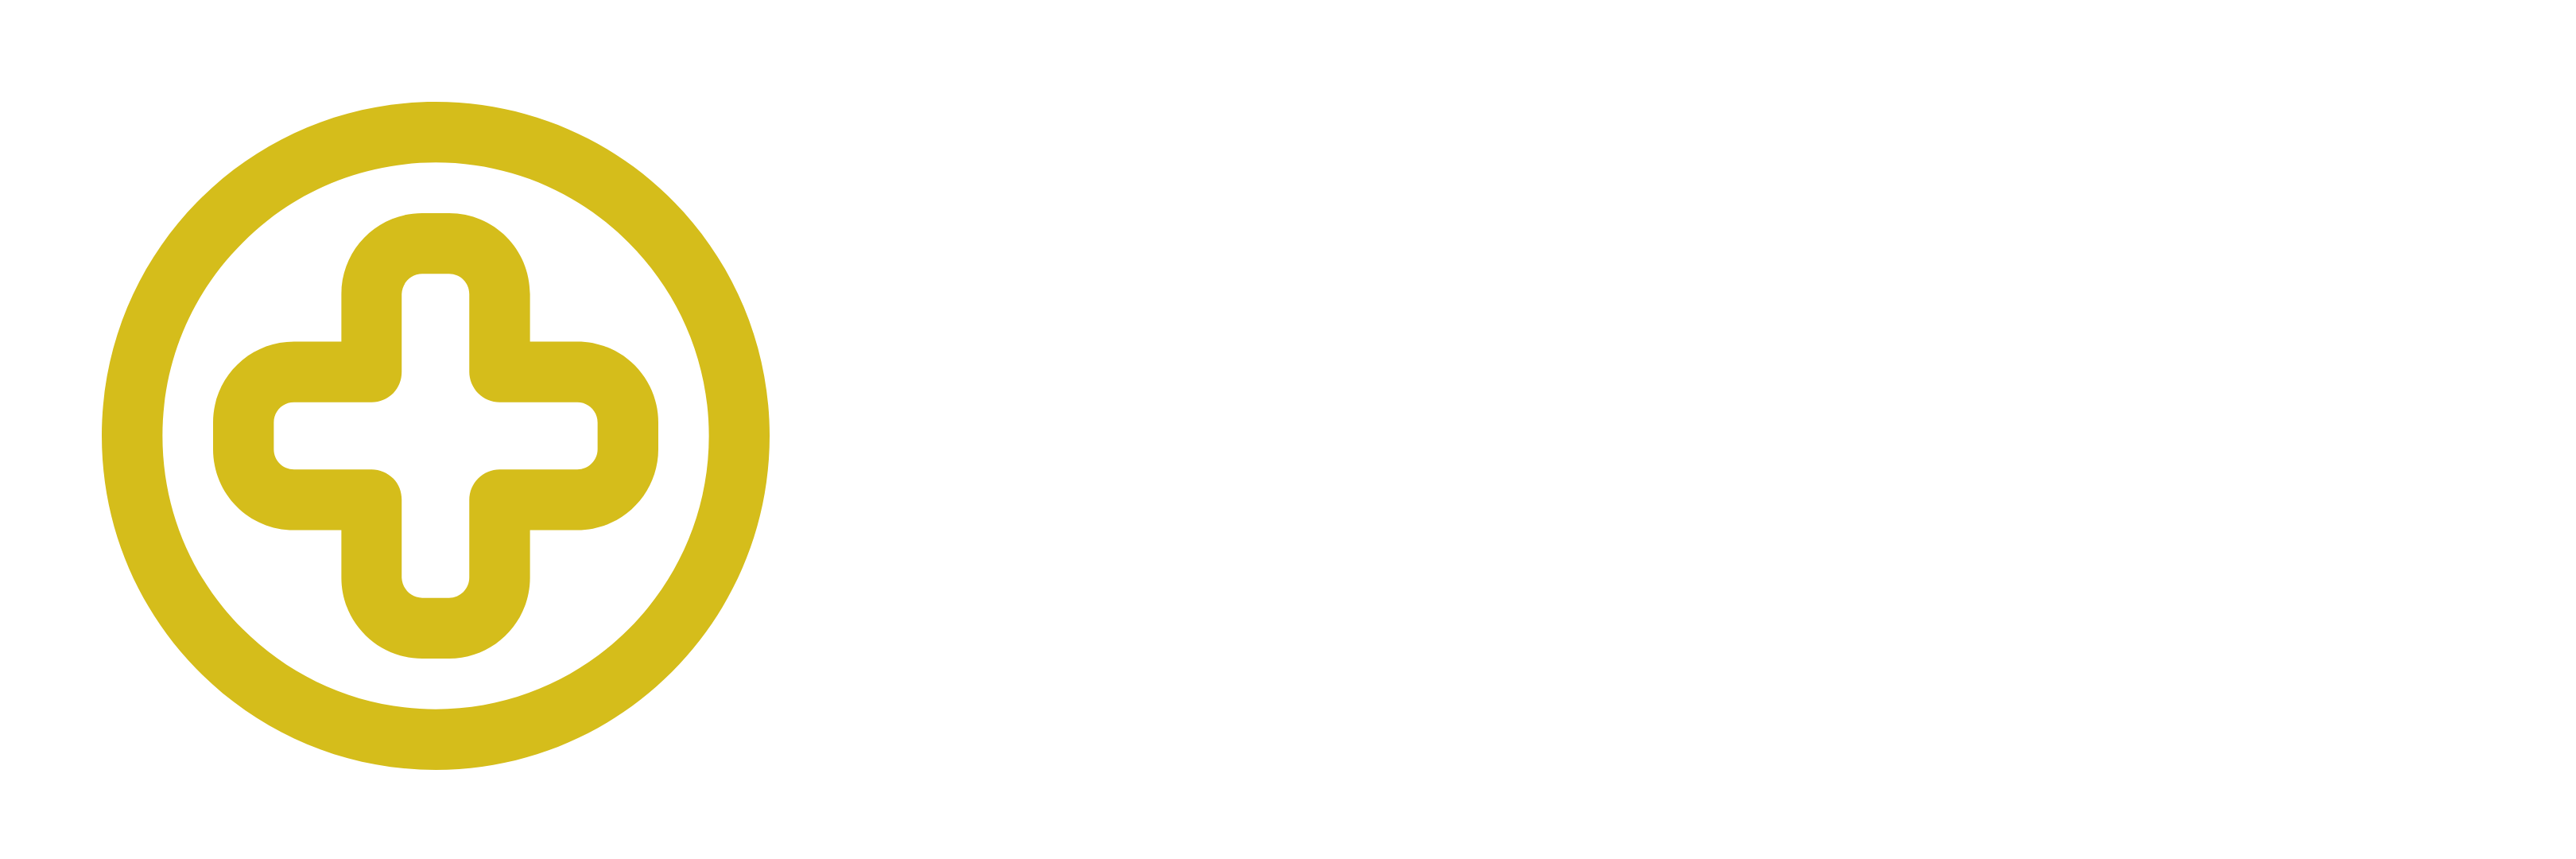 Pharmacy Telco Logo